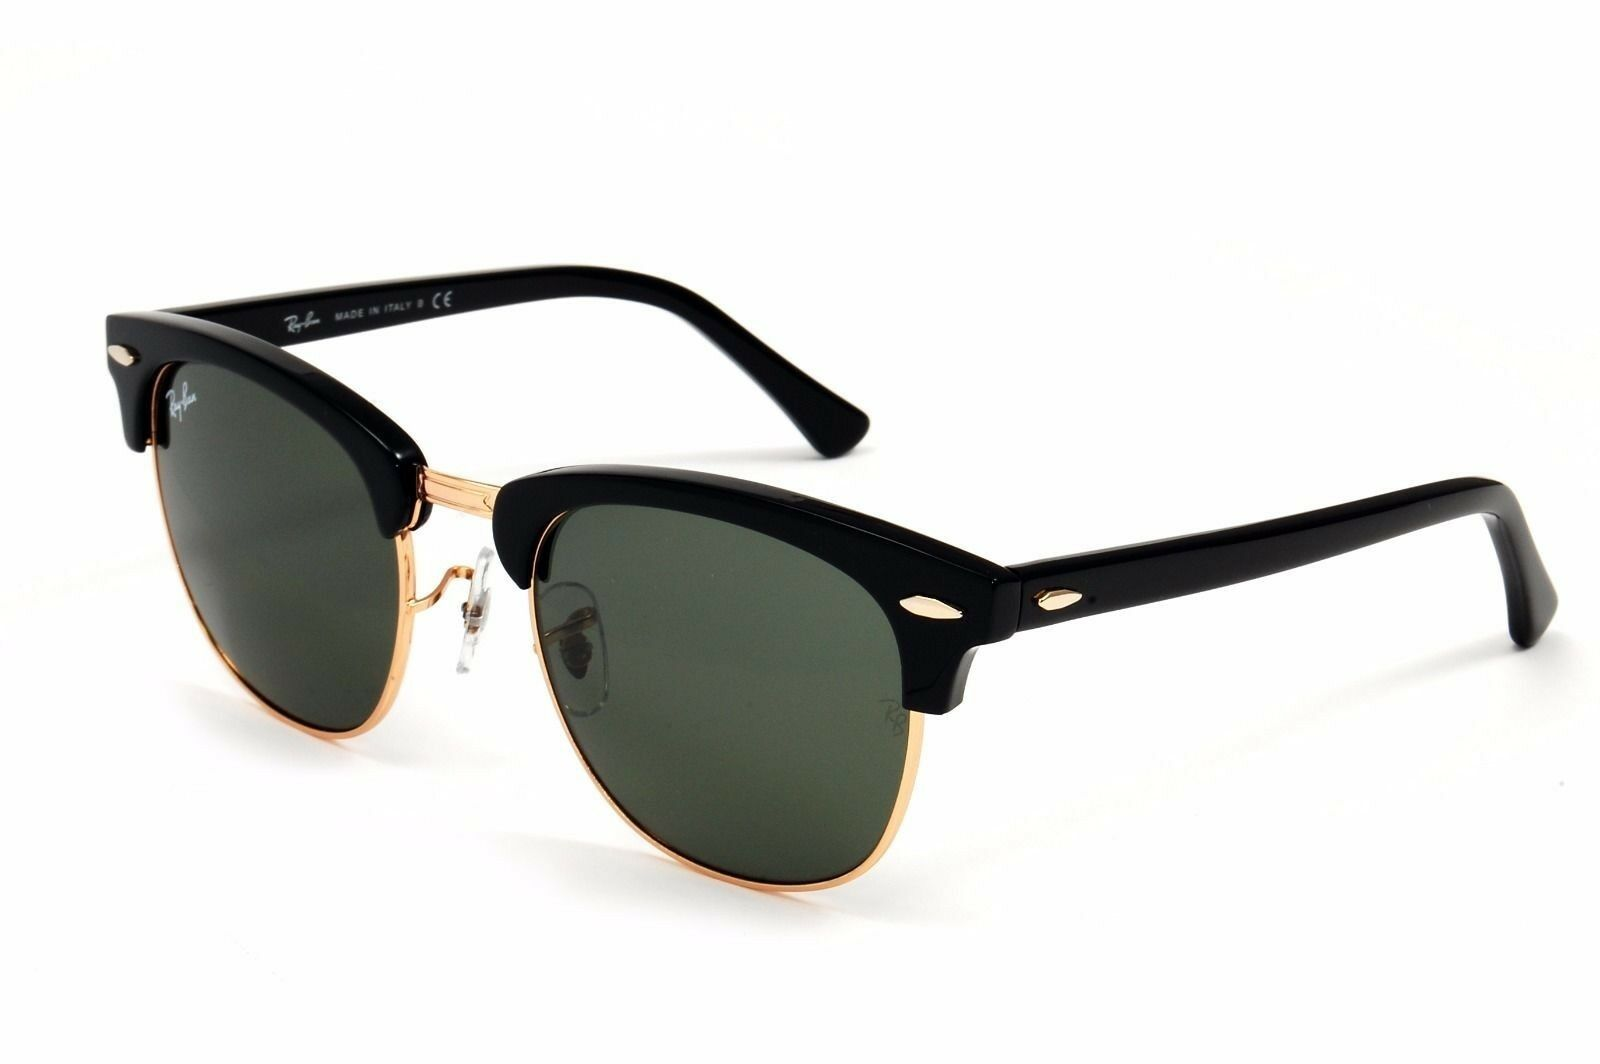 Authentic Ray Ban Sunglasses RB3016 W0365 51mm Clubmaster Black Frame Green Lens